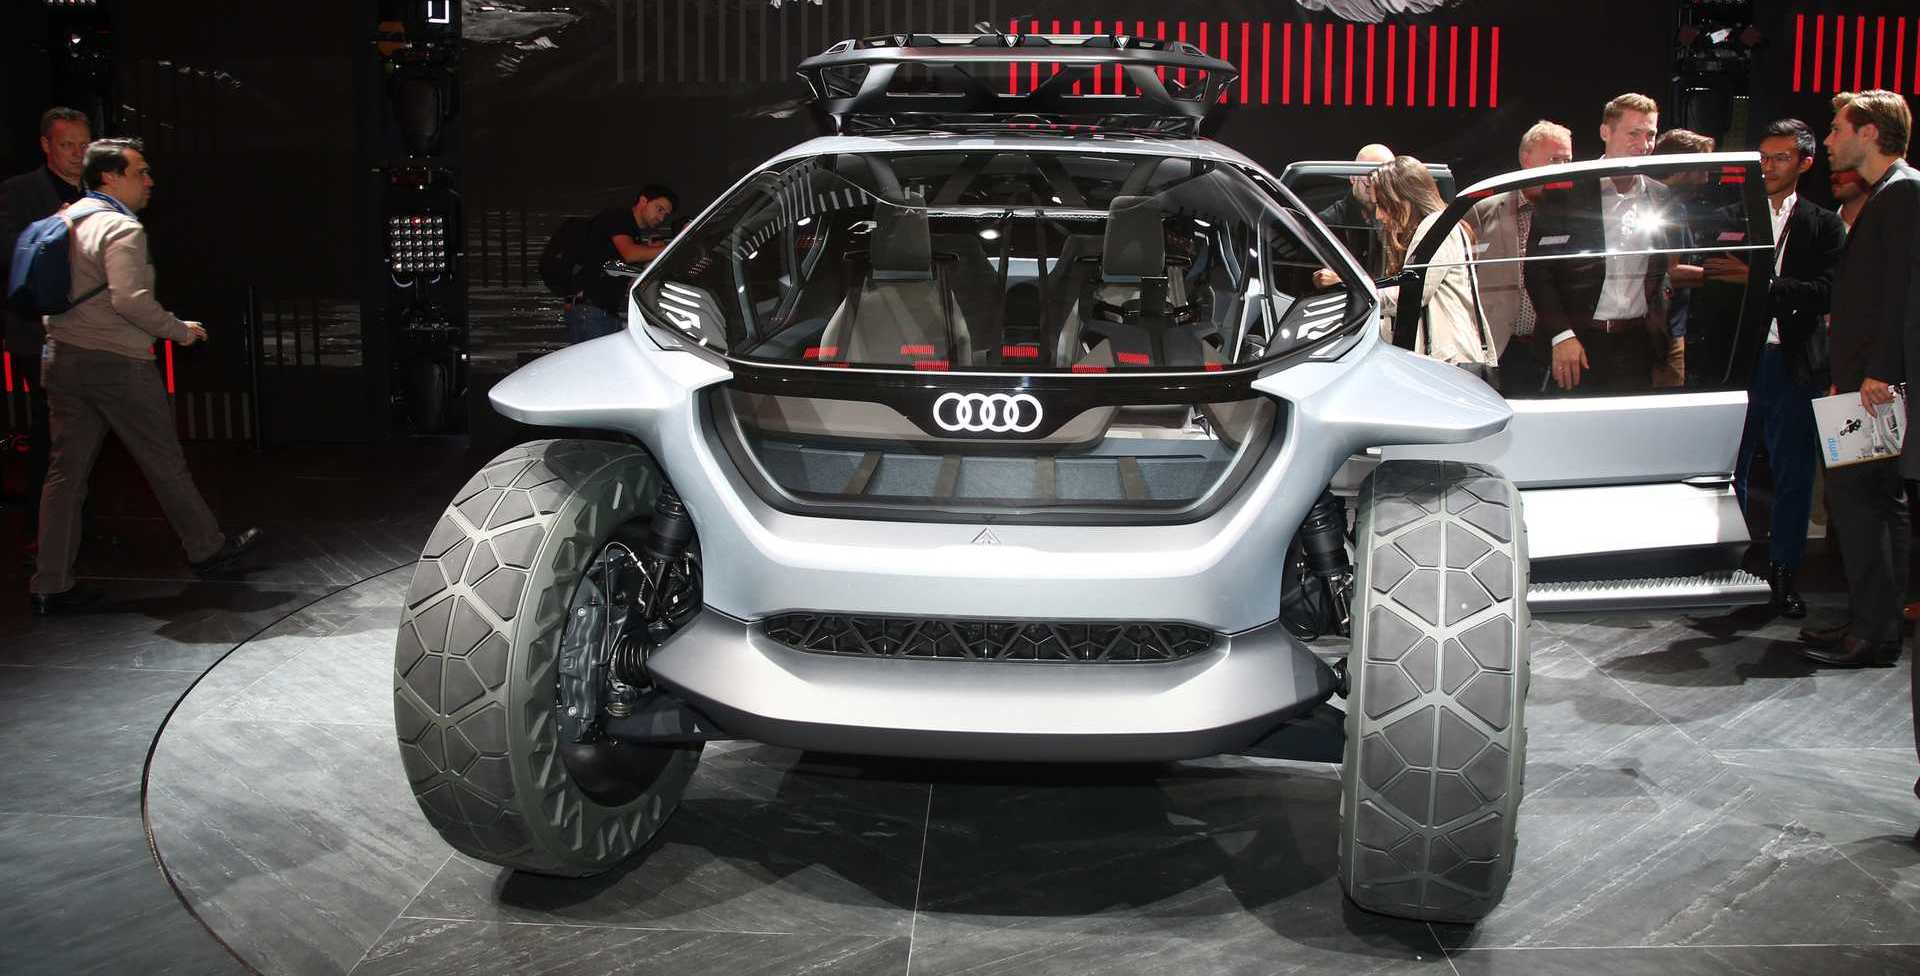 Audi AI:Trail Quattro is a fanciful electric offroad concept